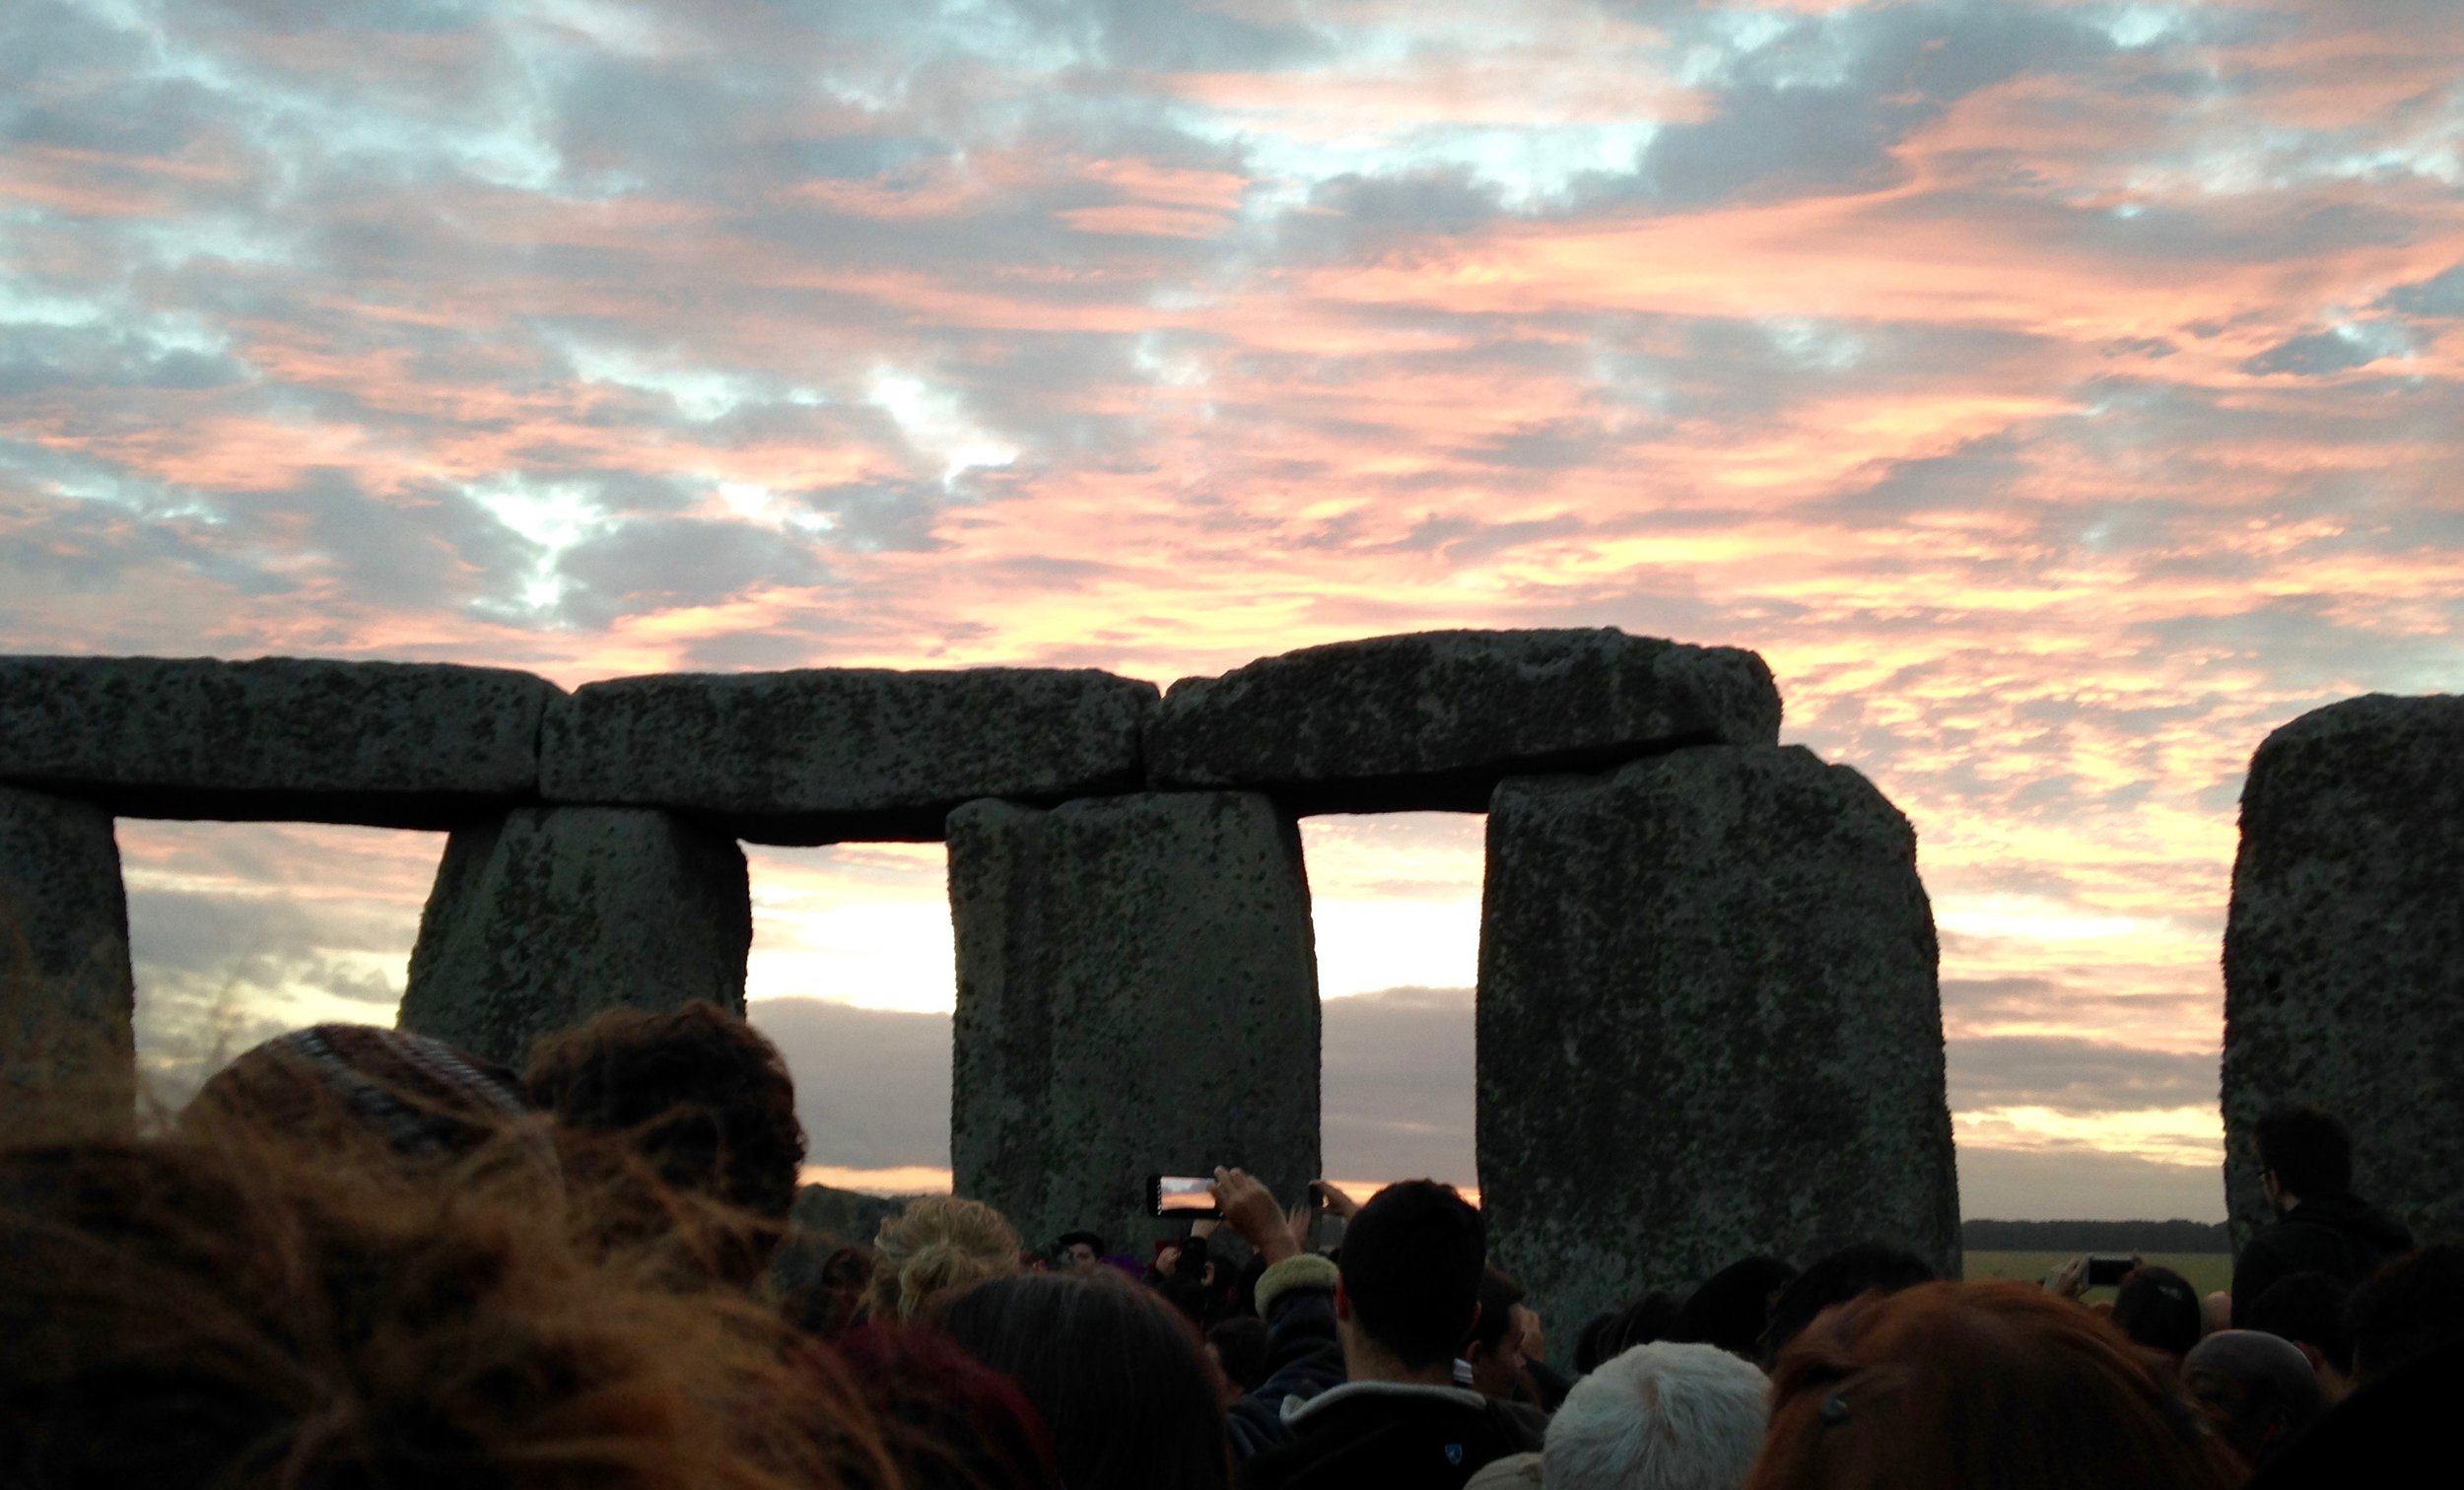 Summer Solstice sunrise at Stonehenge, viewed with ten thousand others.